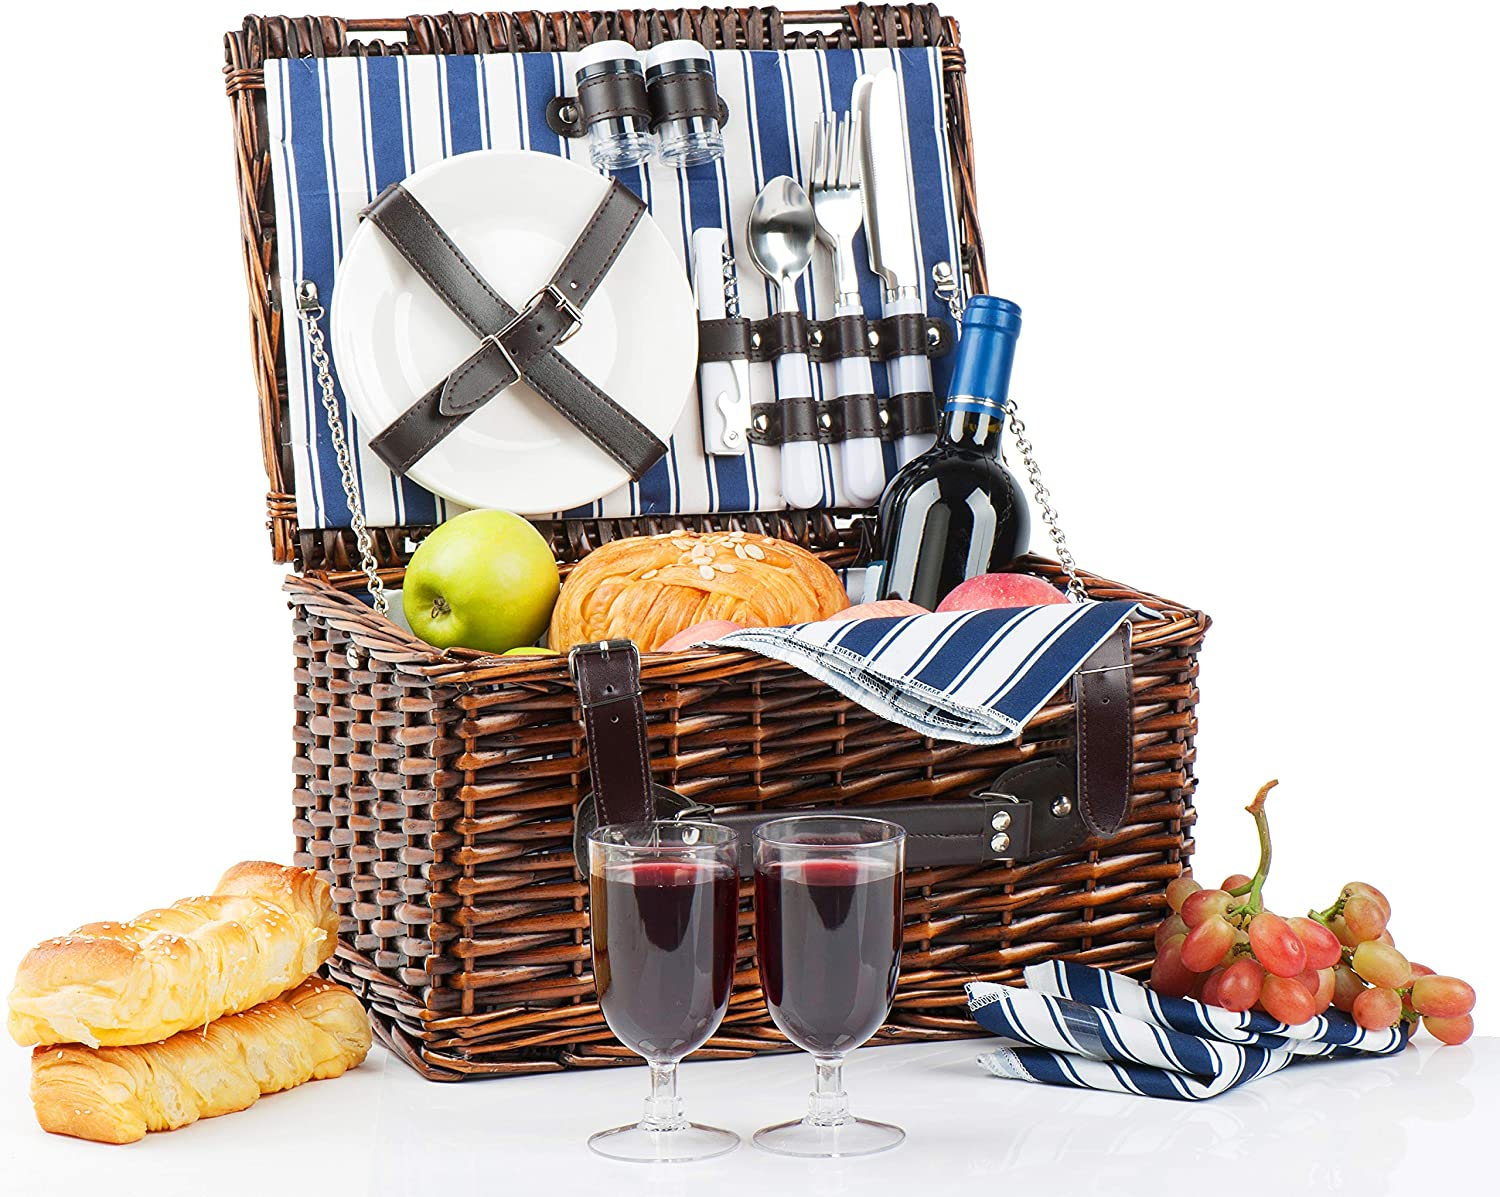 Picnic Basket for 2 | Handmade Picnic Hamper Set | Ceramic Plates Complete Kit Includes Metal Flatware Wine Glasses S/P Shakers and Bottle Opener | Blue Stripe Pattern Lining | Picnic Tote Wine Gifts